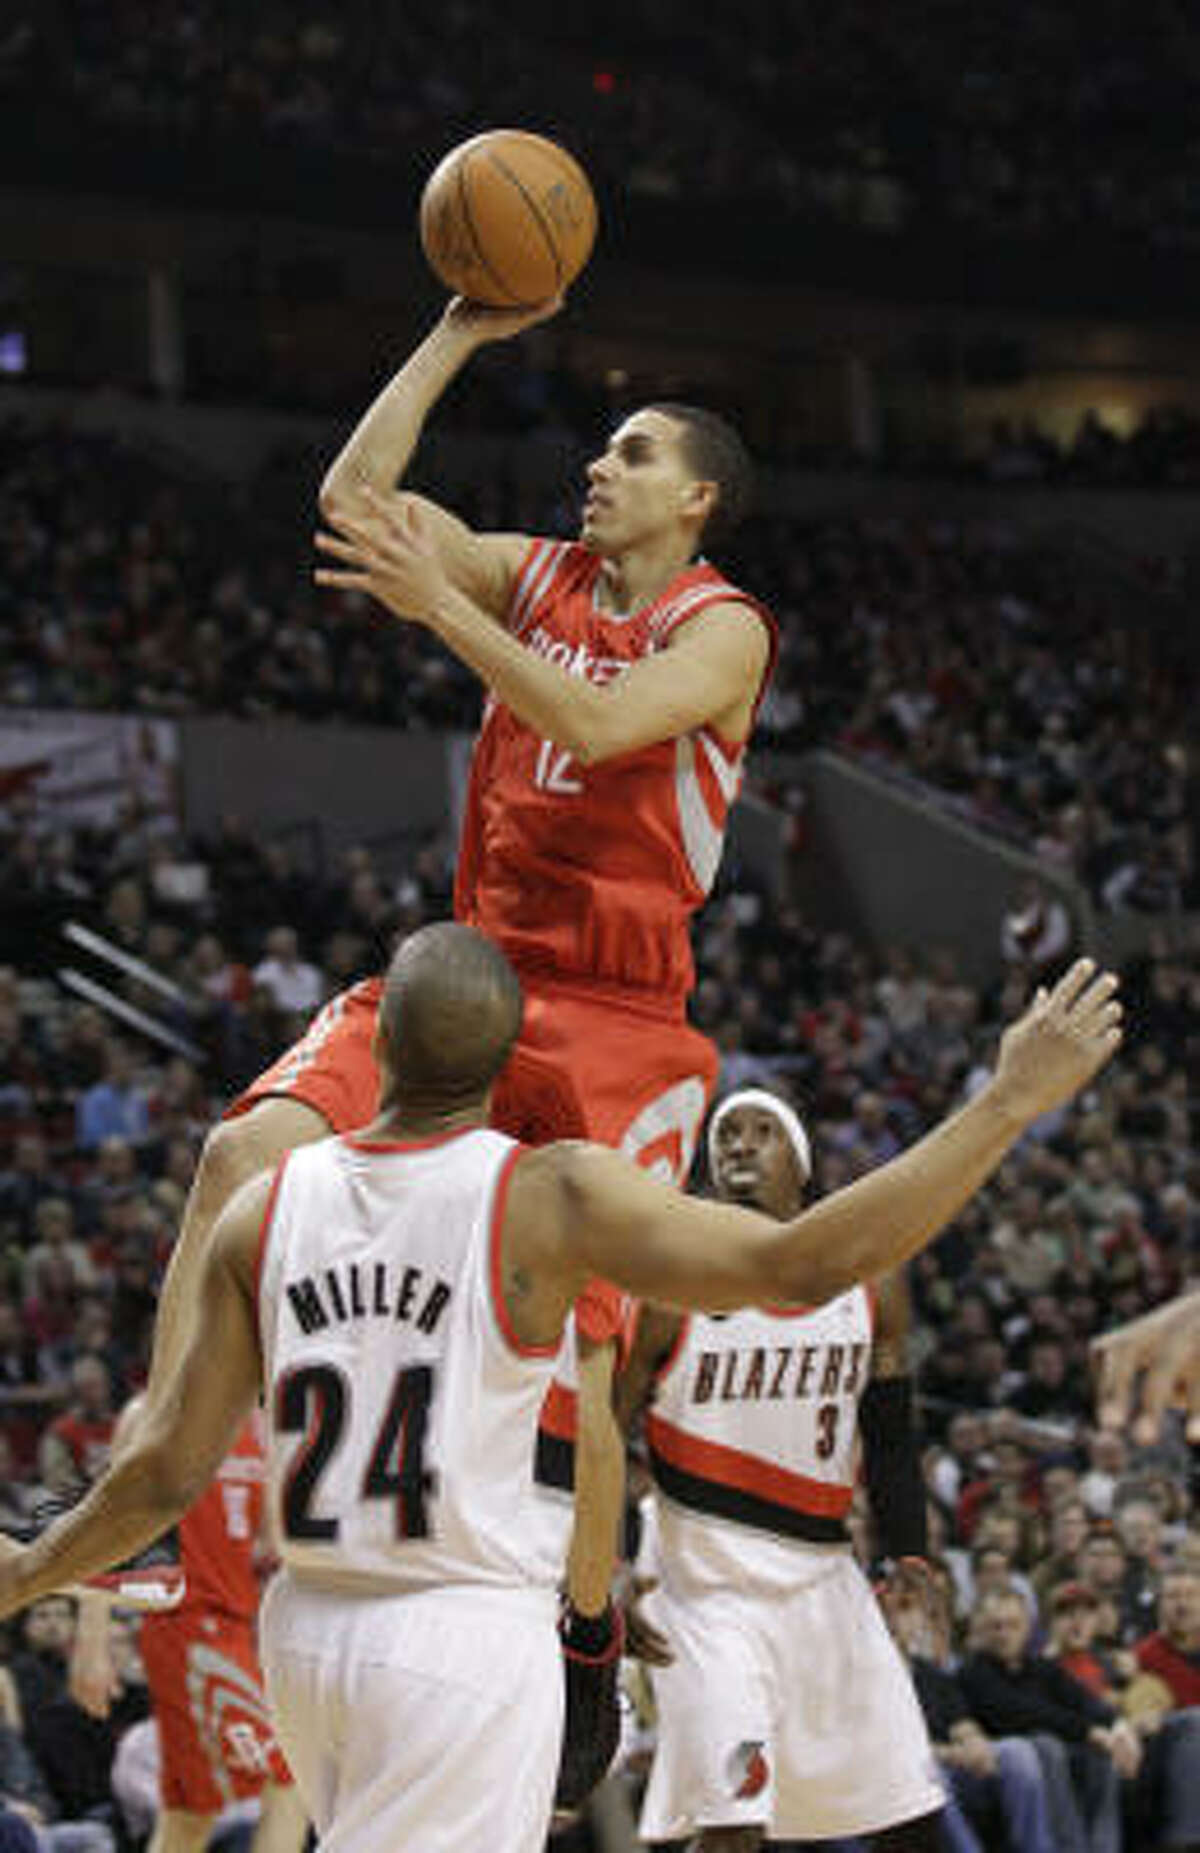 Rockets guard Kevin Martin puts up a shot as Trail Blazers guard Andre Miller (24) and Gerald Wallace look on in the second quarter.